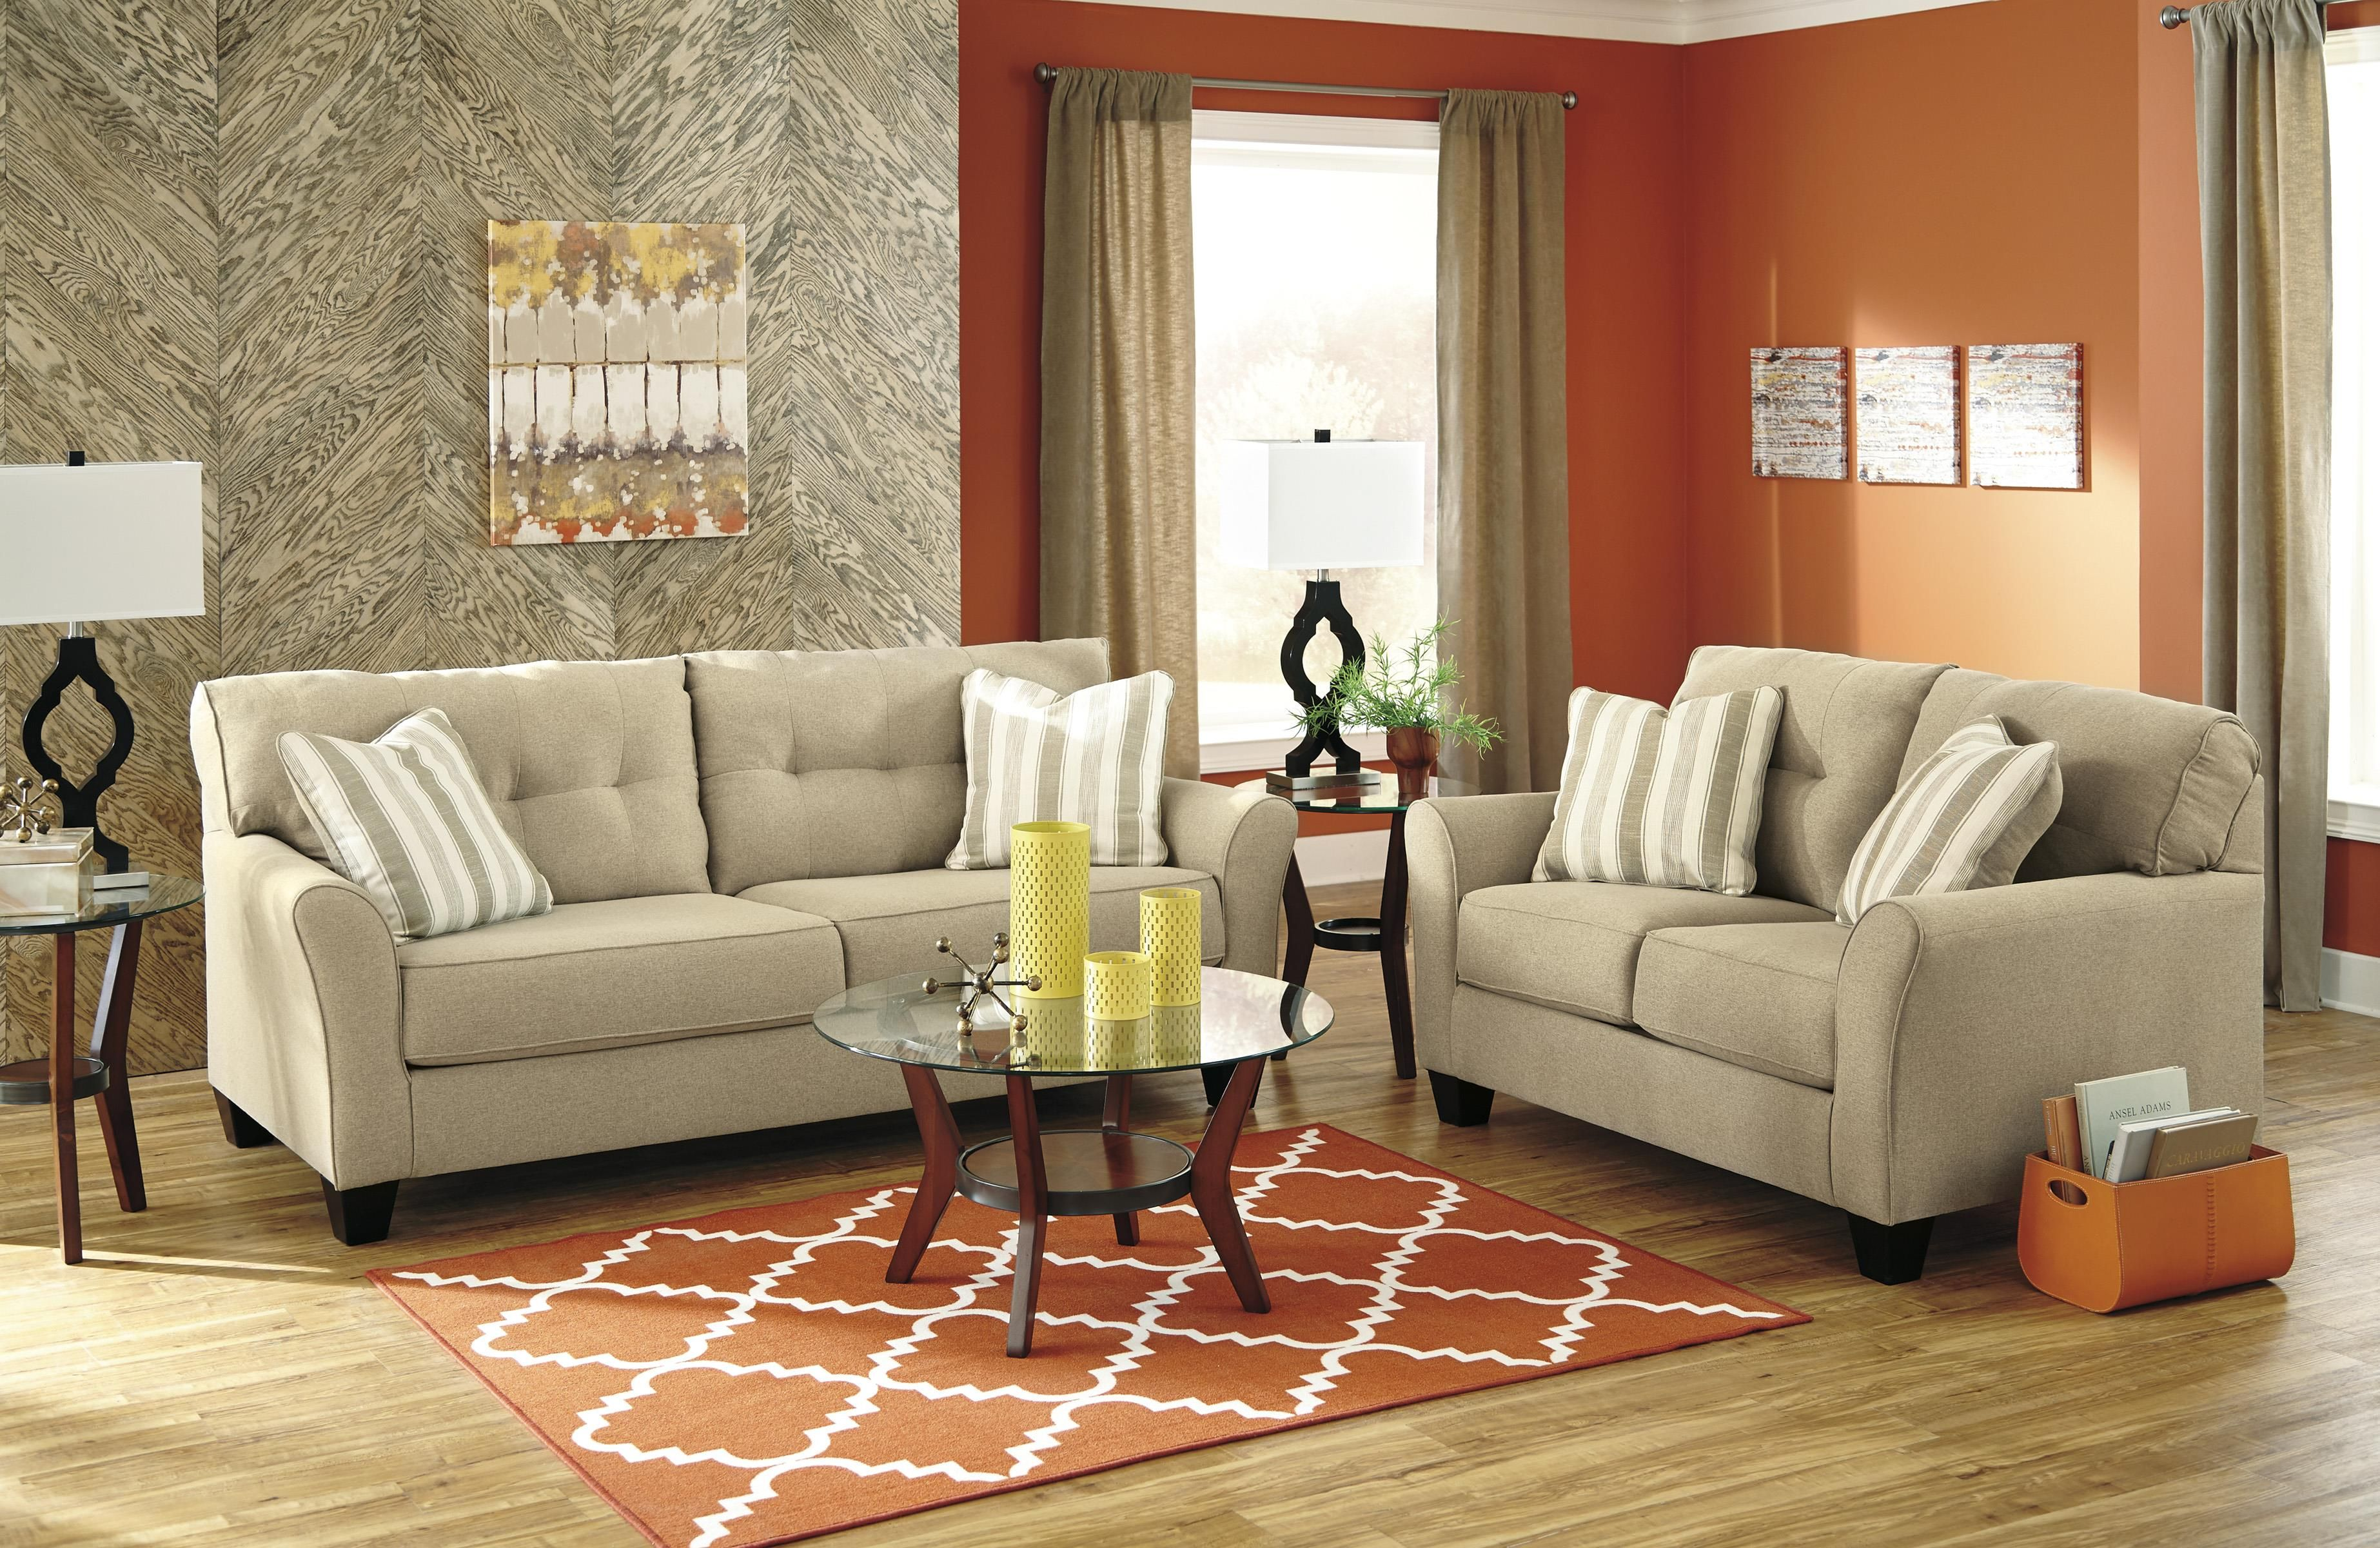 Contemporary Sofa In Khaki Fabric By Benchcraft Wolf And Gardiner